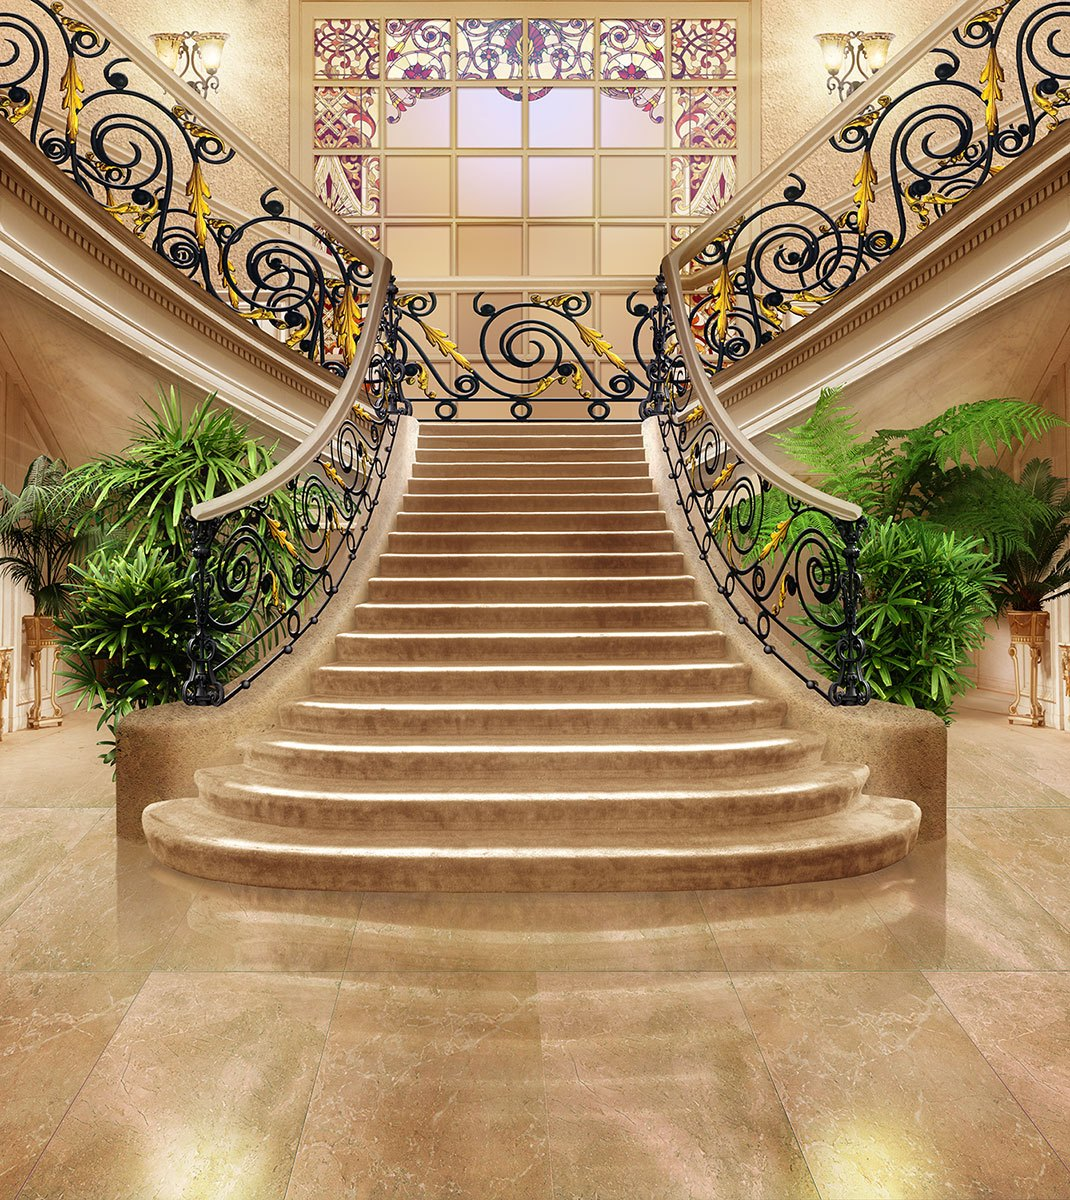 Wall Murals: Stairs of a great hotel